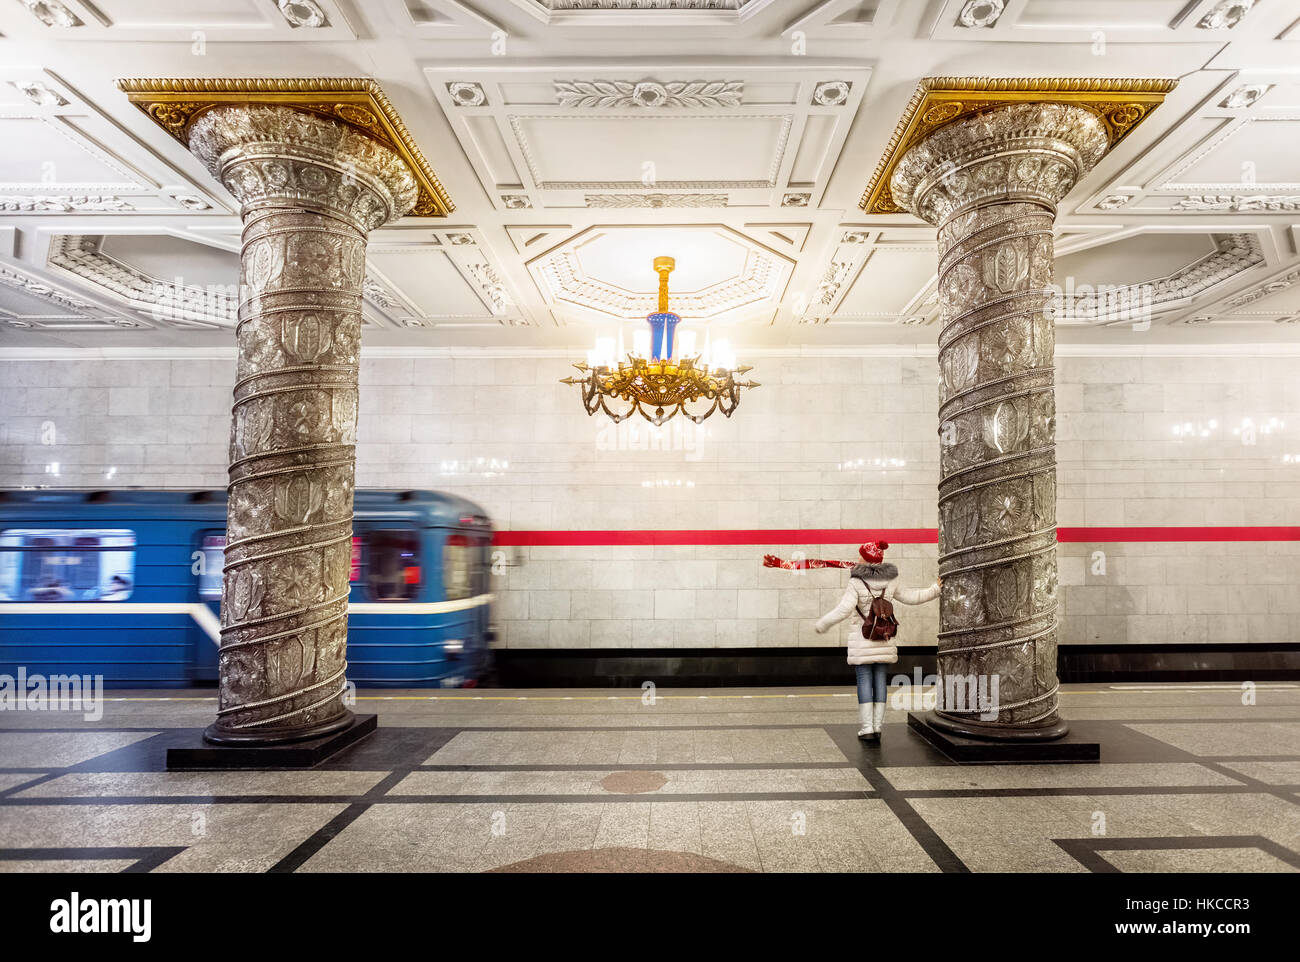 Tourist woman with red scarf and train leaving station in subway Avtovo in Saint Petersburg, Russia - Stock Image